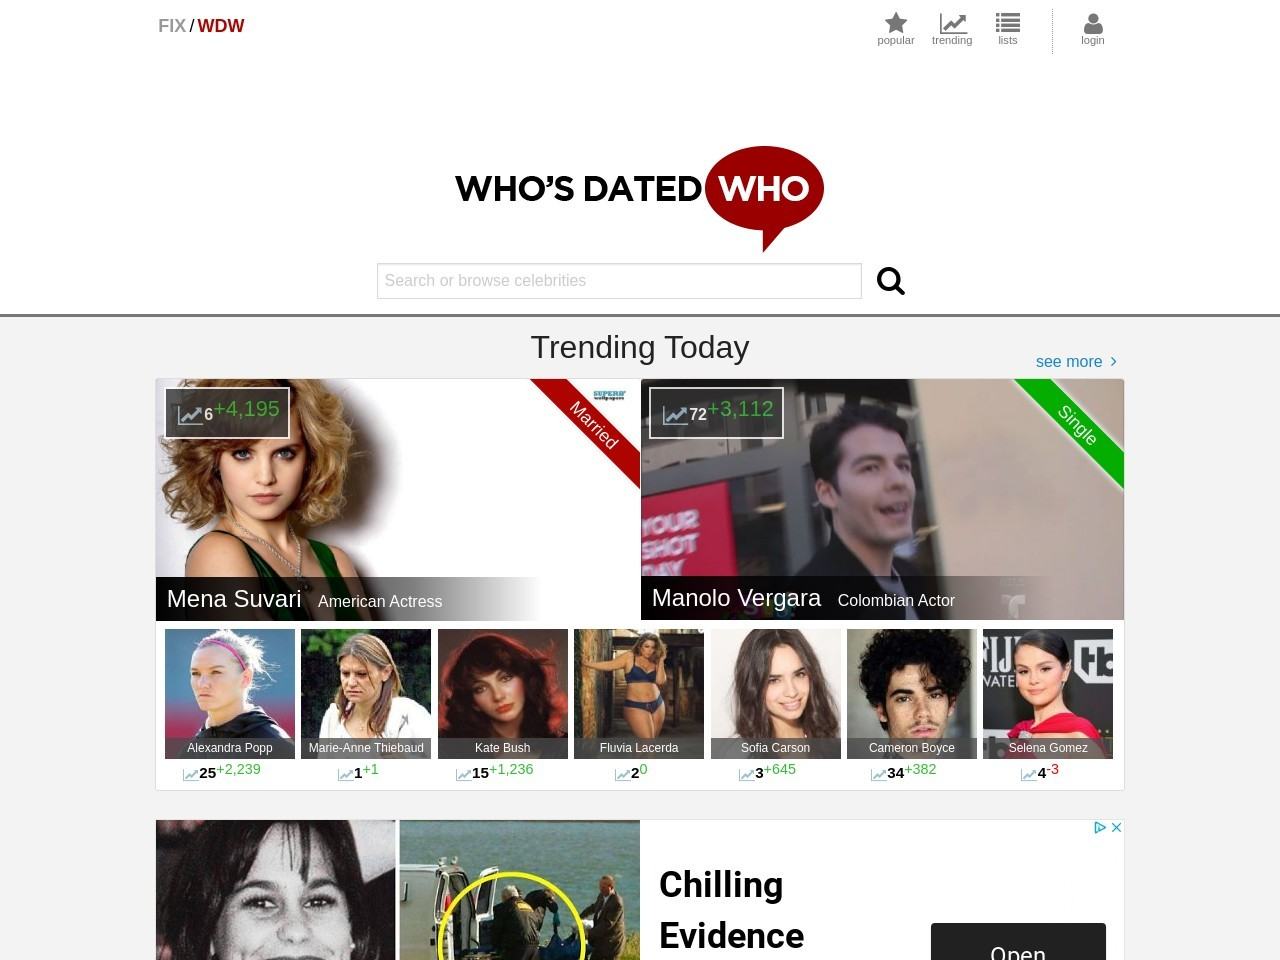 Who's Dated Who? - In Hollywood it seems everyone's dated everyone!